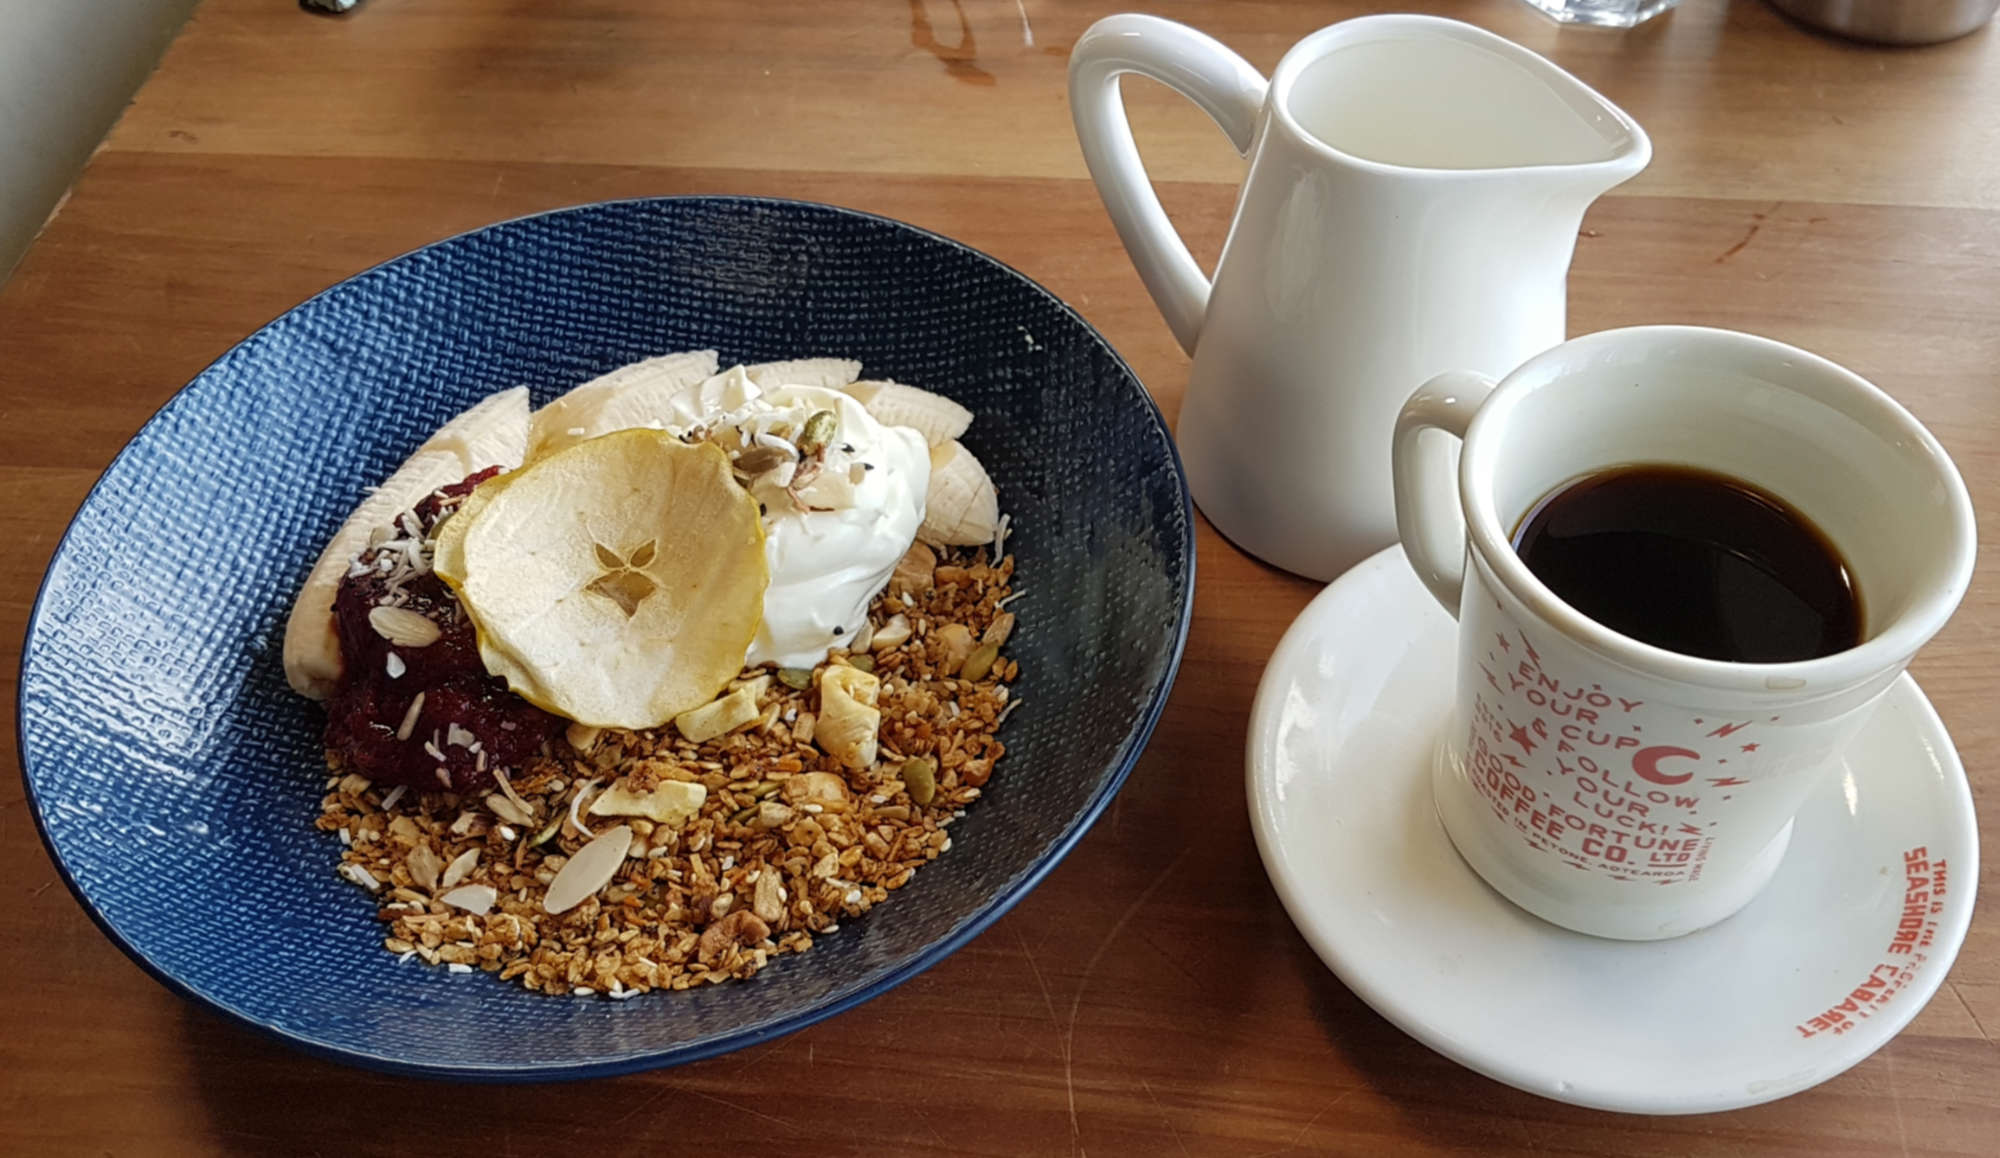 Seashore Cabaret granola and coffee